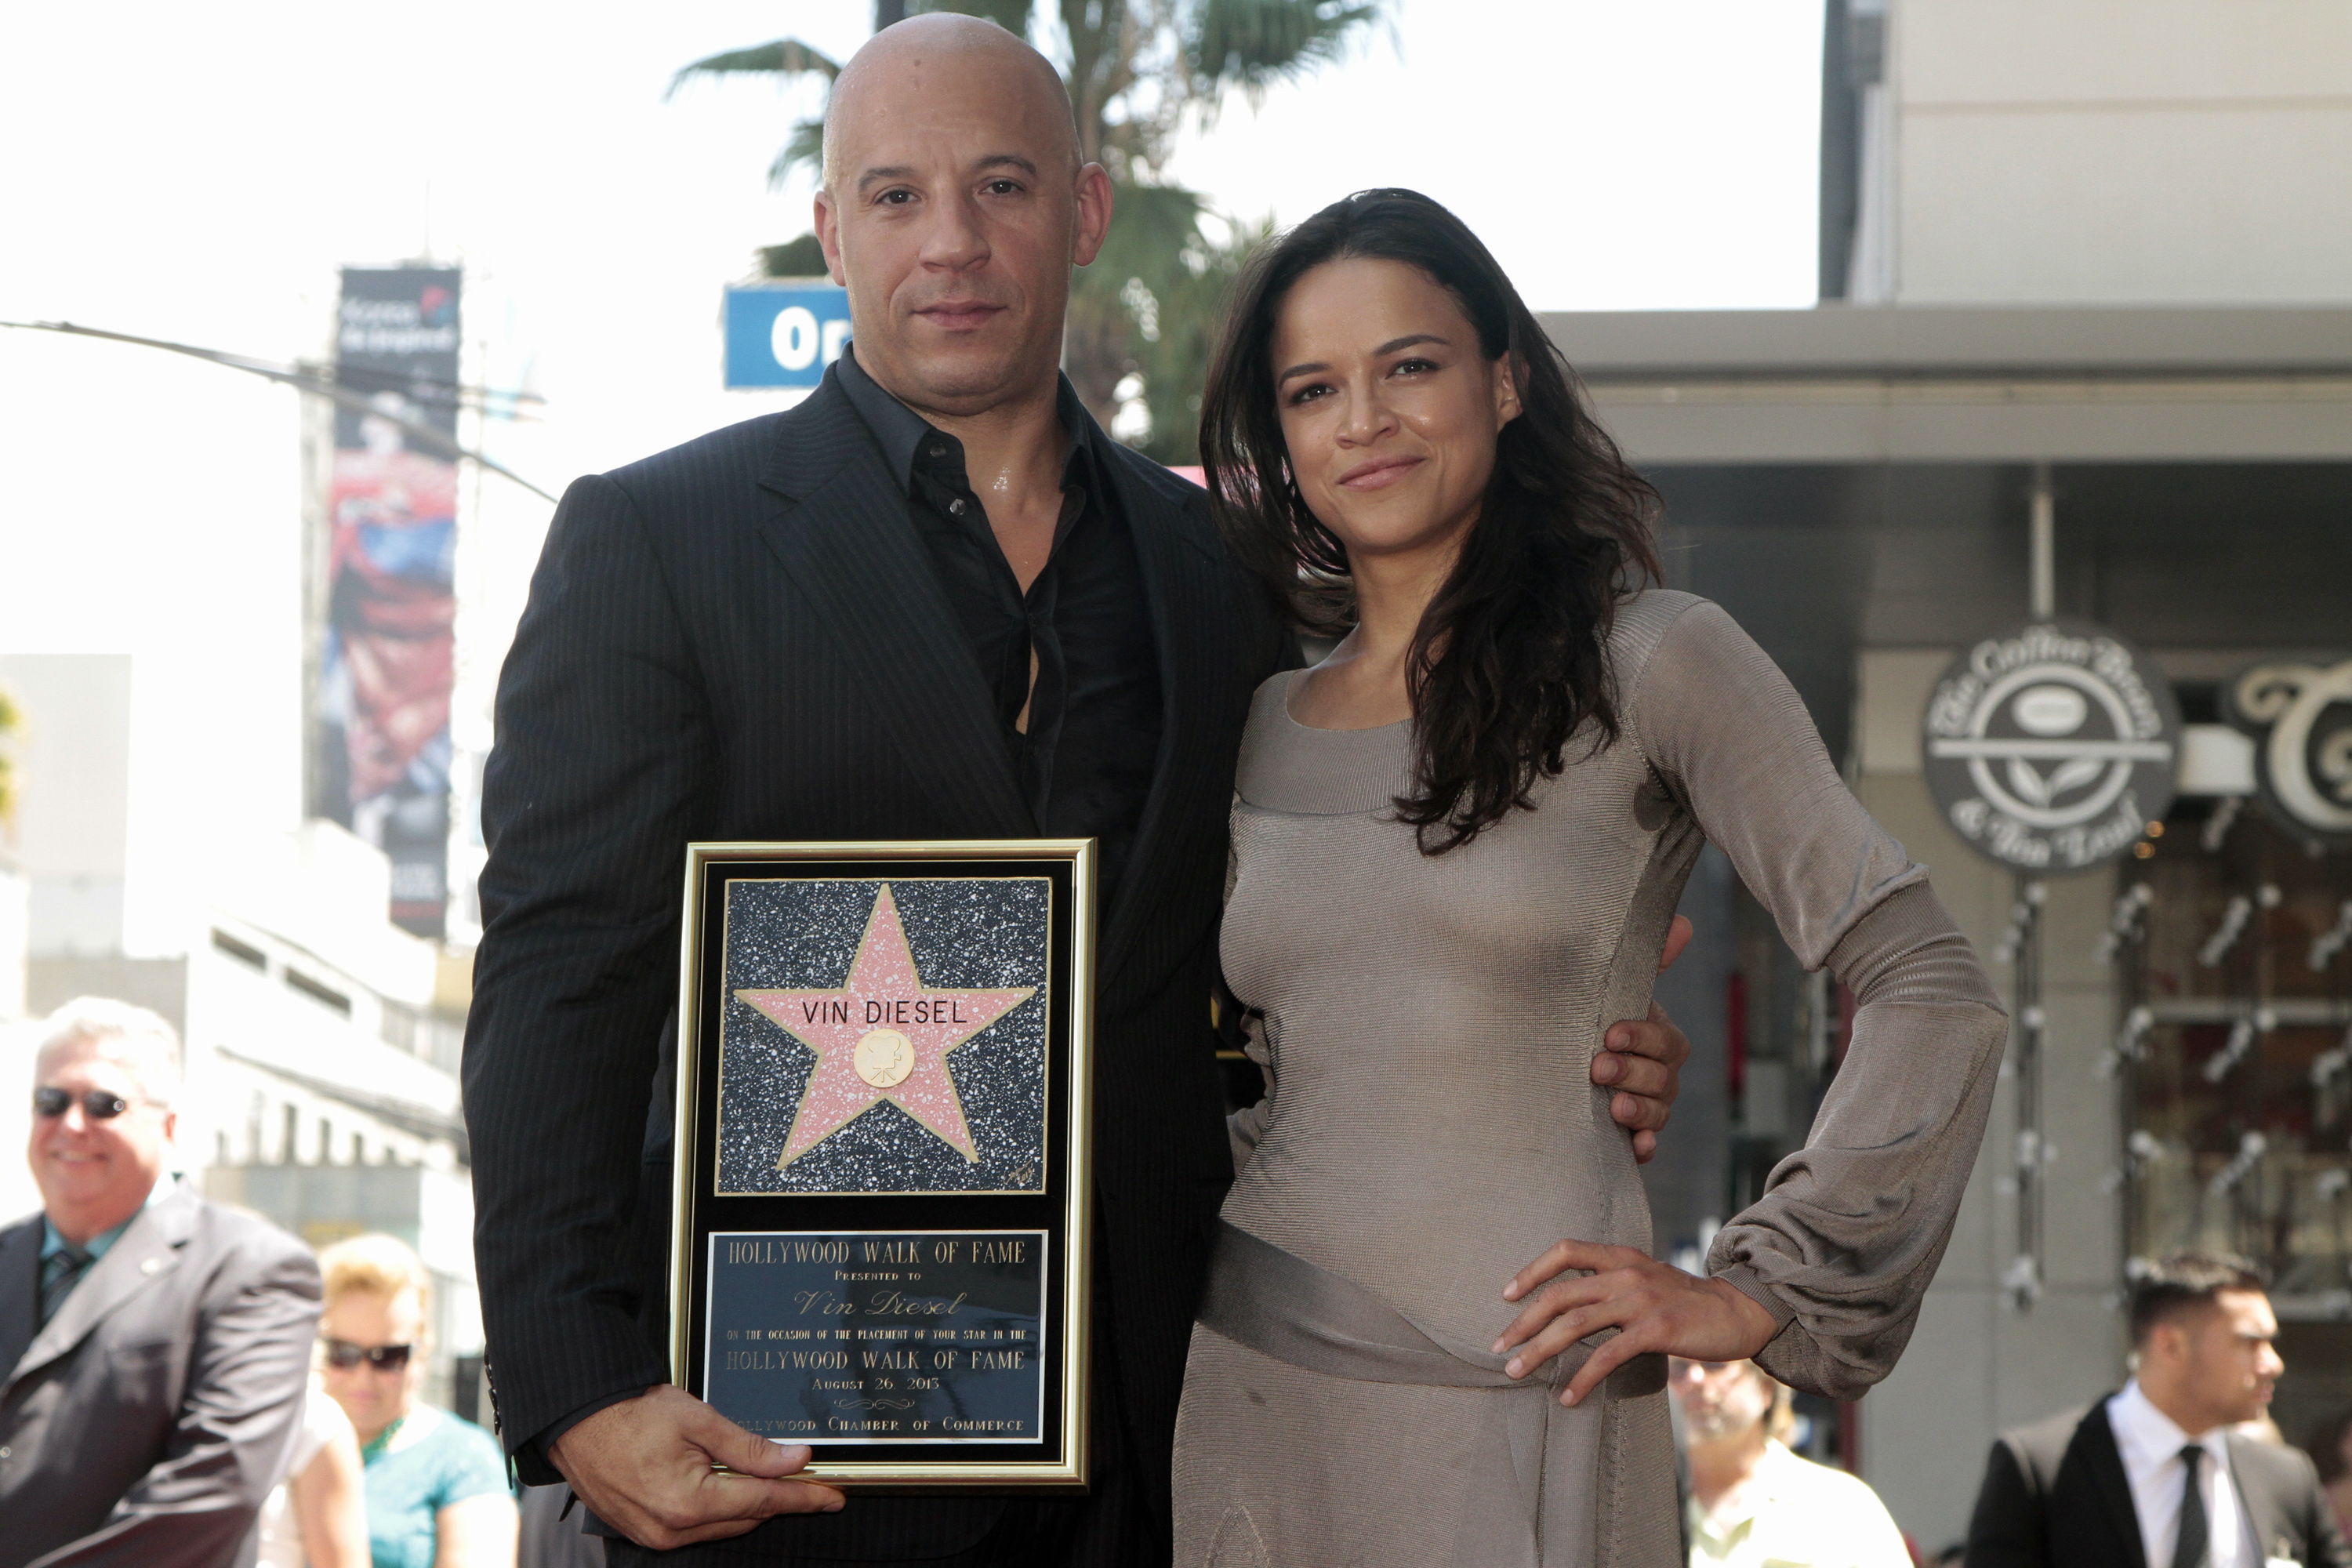 are vin diesel and michelle rodriguez dating 2013